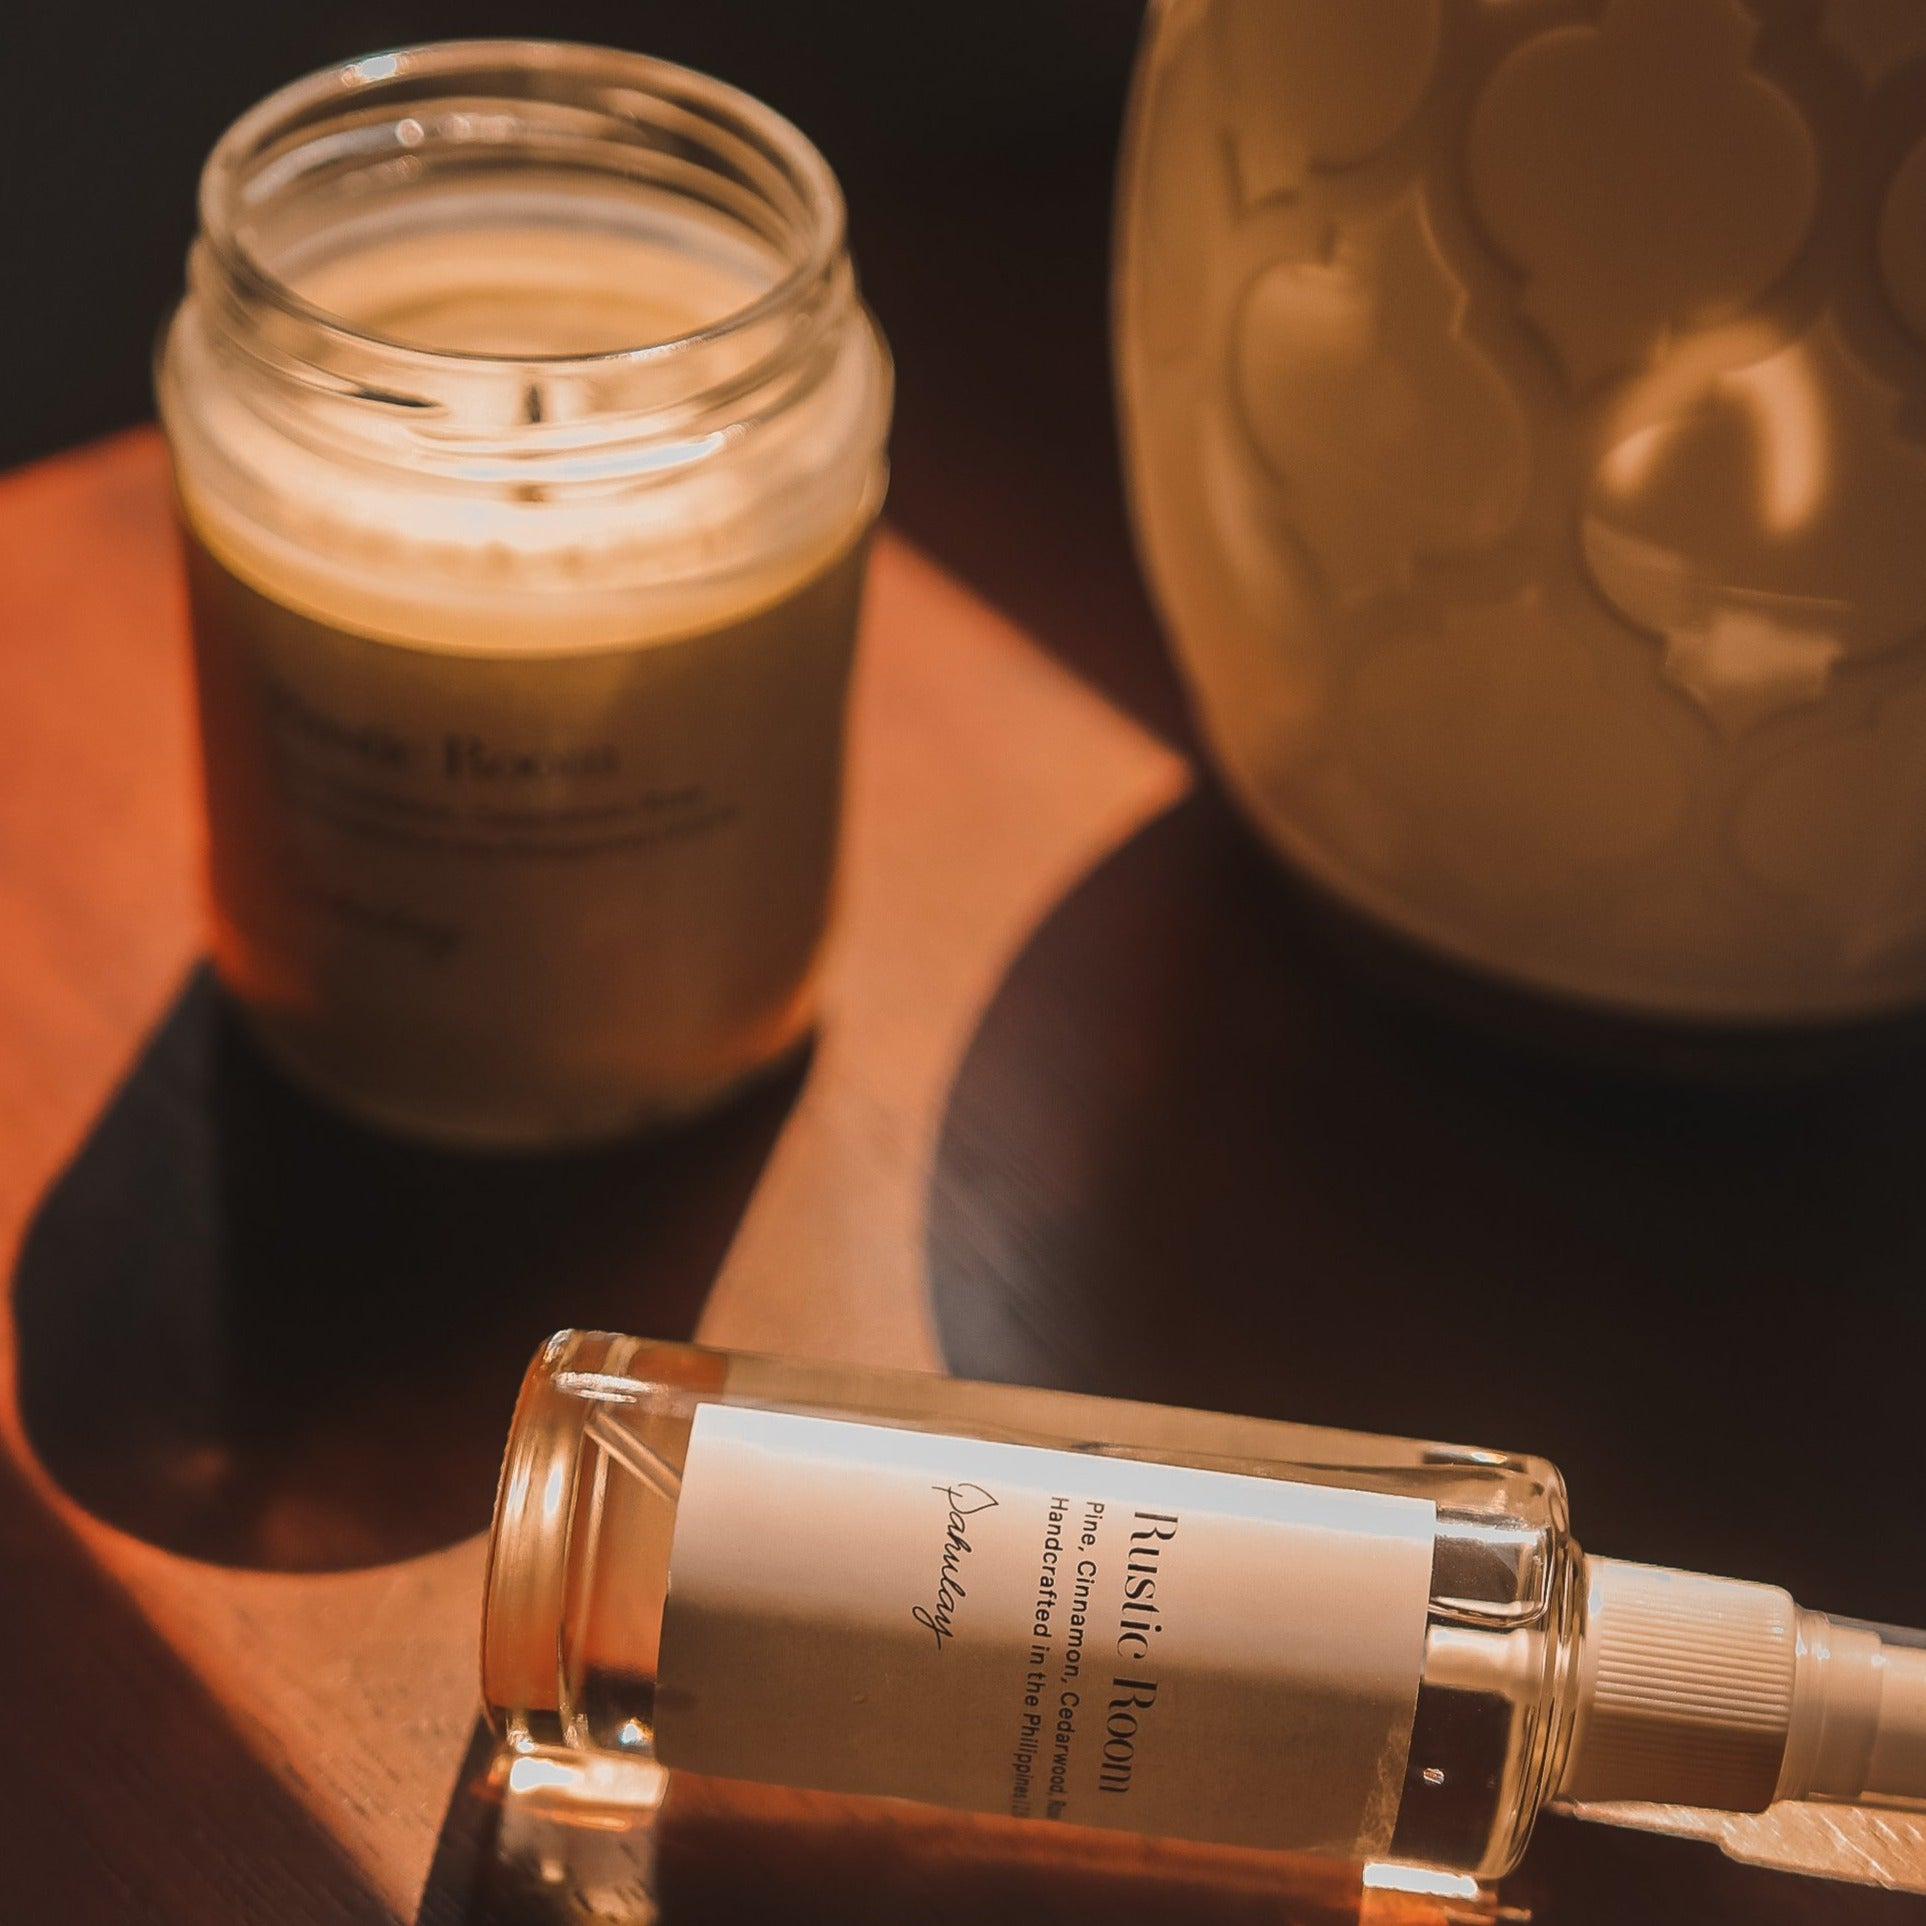 Home Set: 8.5 oz Candle + Home Spray